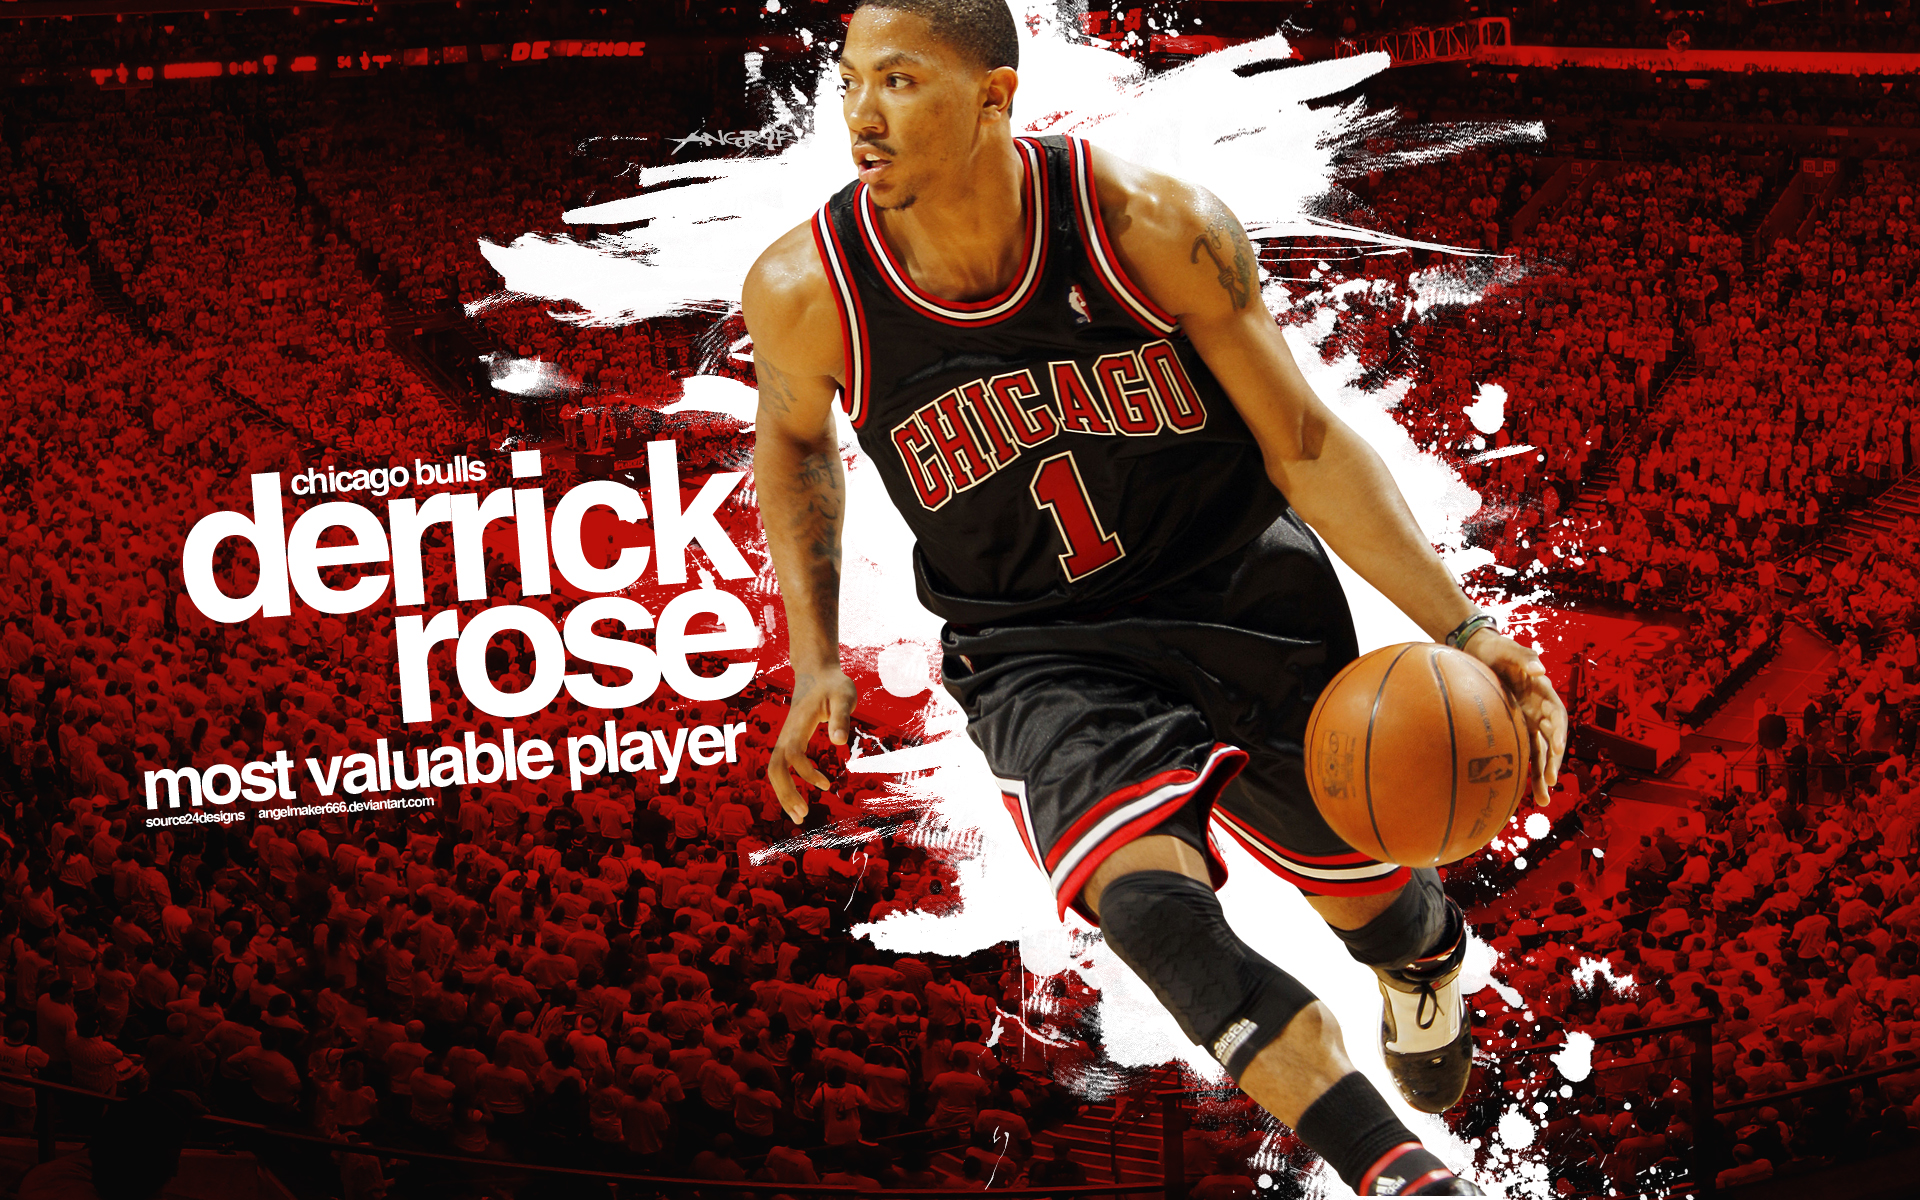 Derrick Rose Dunk On Lebron James Wallpaper Images 1920x1200